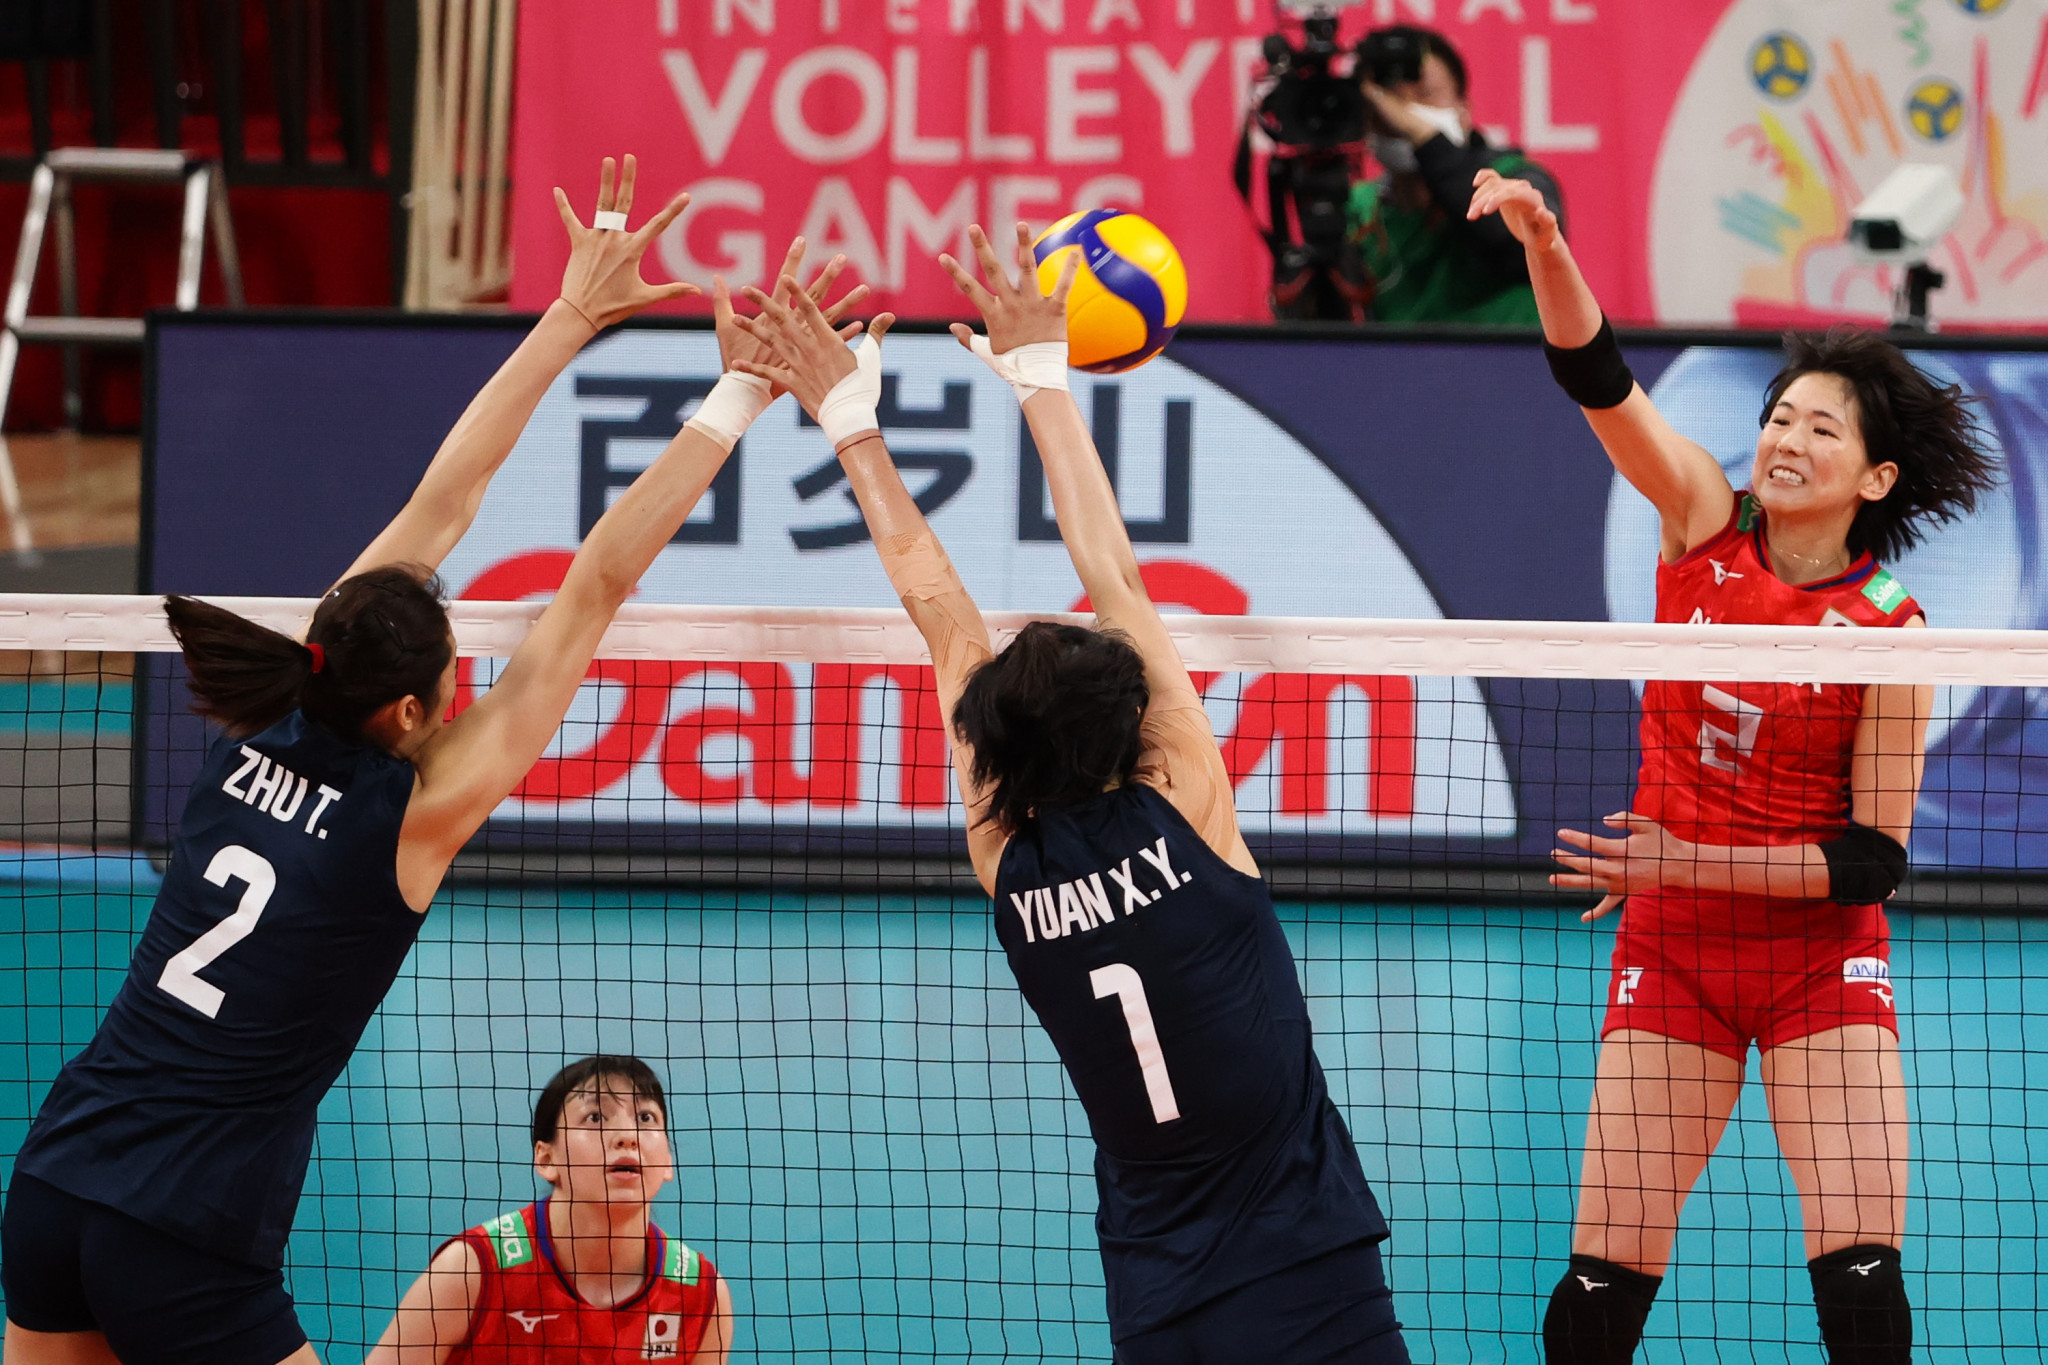 China and Japan are going head-to-head in a series of volleyball matches as part of a Tokyo 2020 test event ©Getty Images